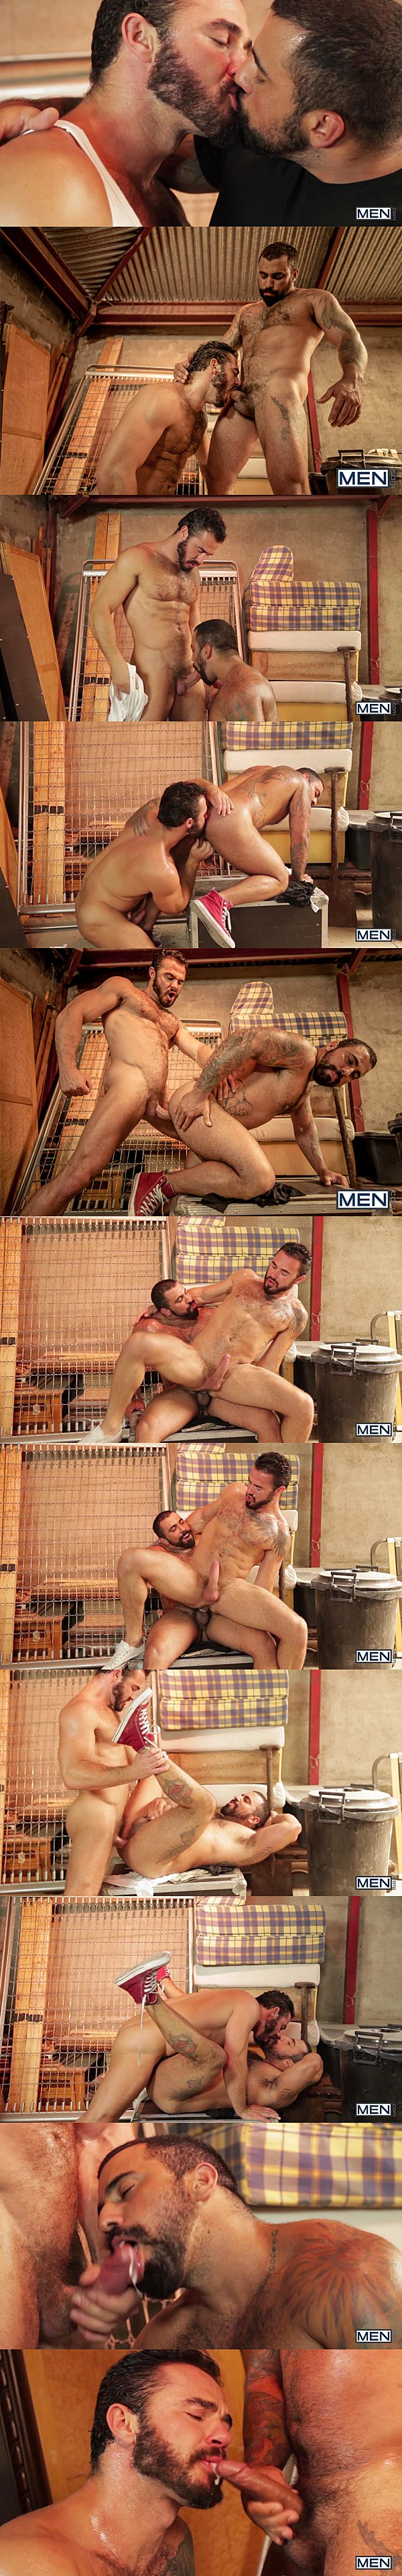 Sexy hairy muscle hunks real couple Jessy Ares & Ricky Ares take turns fucking each other with mutual facials in Last Goodbye at Men 02